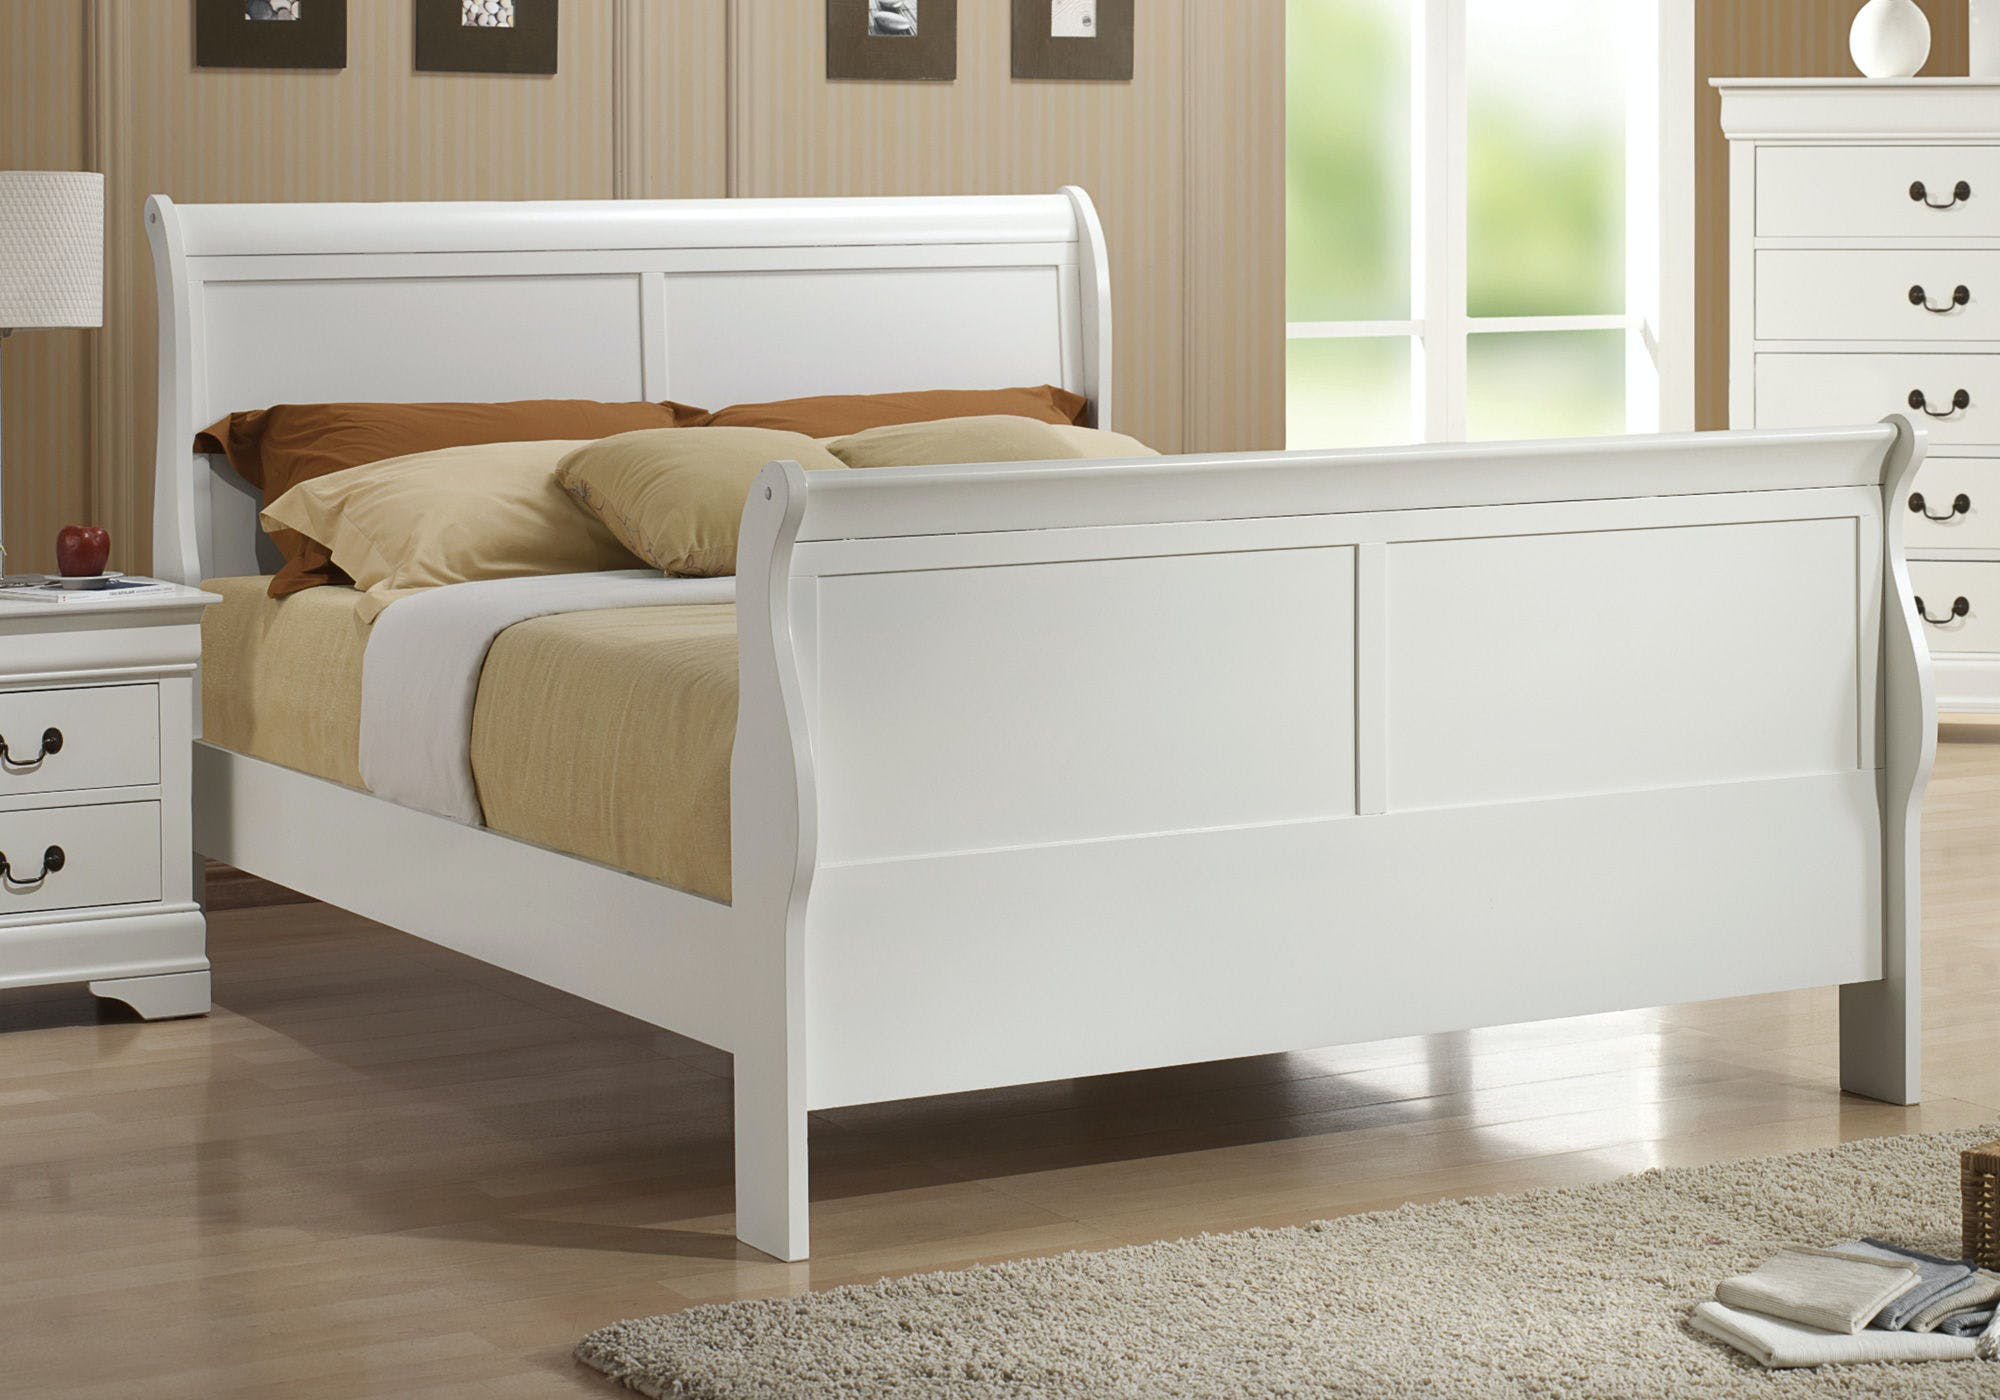 Coaster Bedroom Louis Philippe Traditional Youth White Queen Bed Box Two Fulton Stores Brooklyn